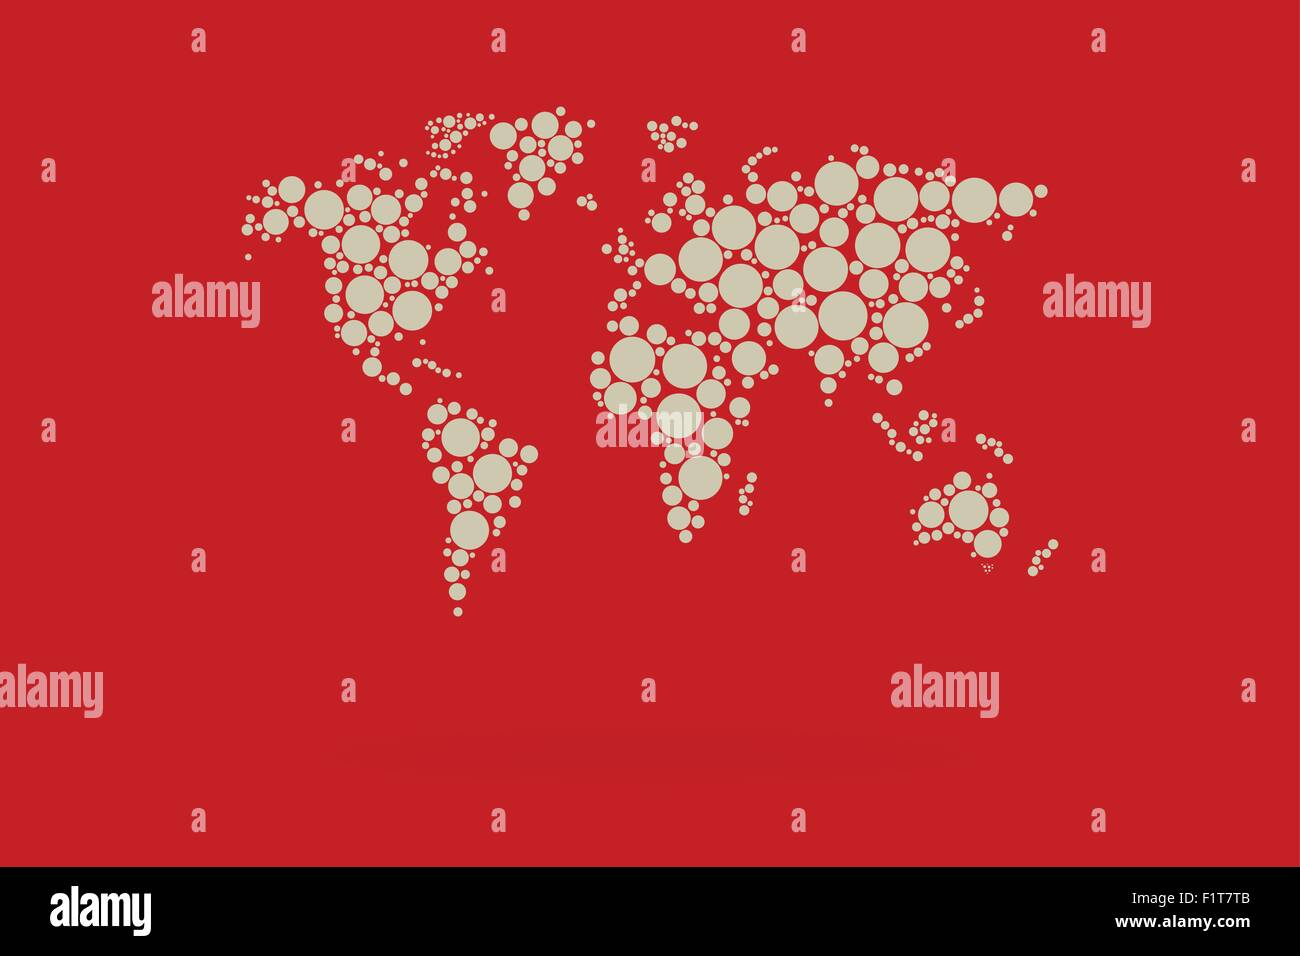 Dotted world map vector with retro contrast colors stock vector art dotted world map vector with retro contrast colors gumiabroncs Gallery